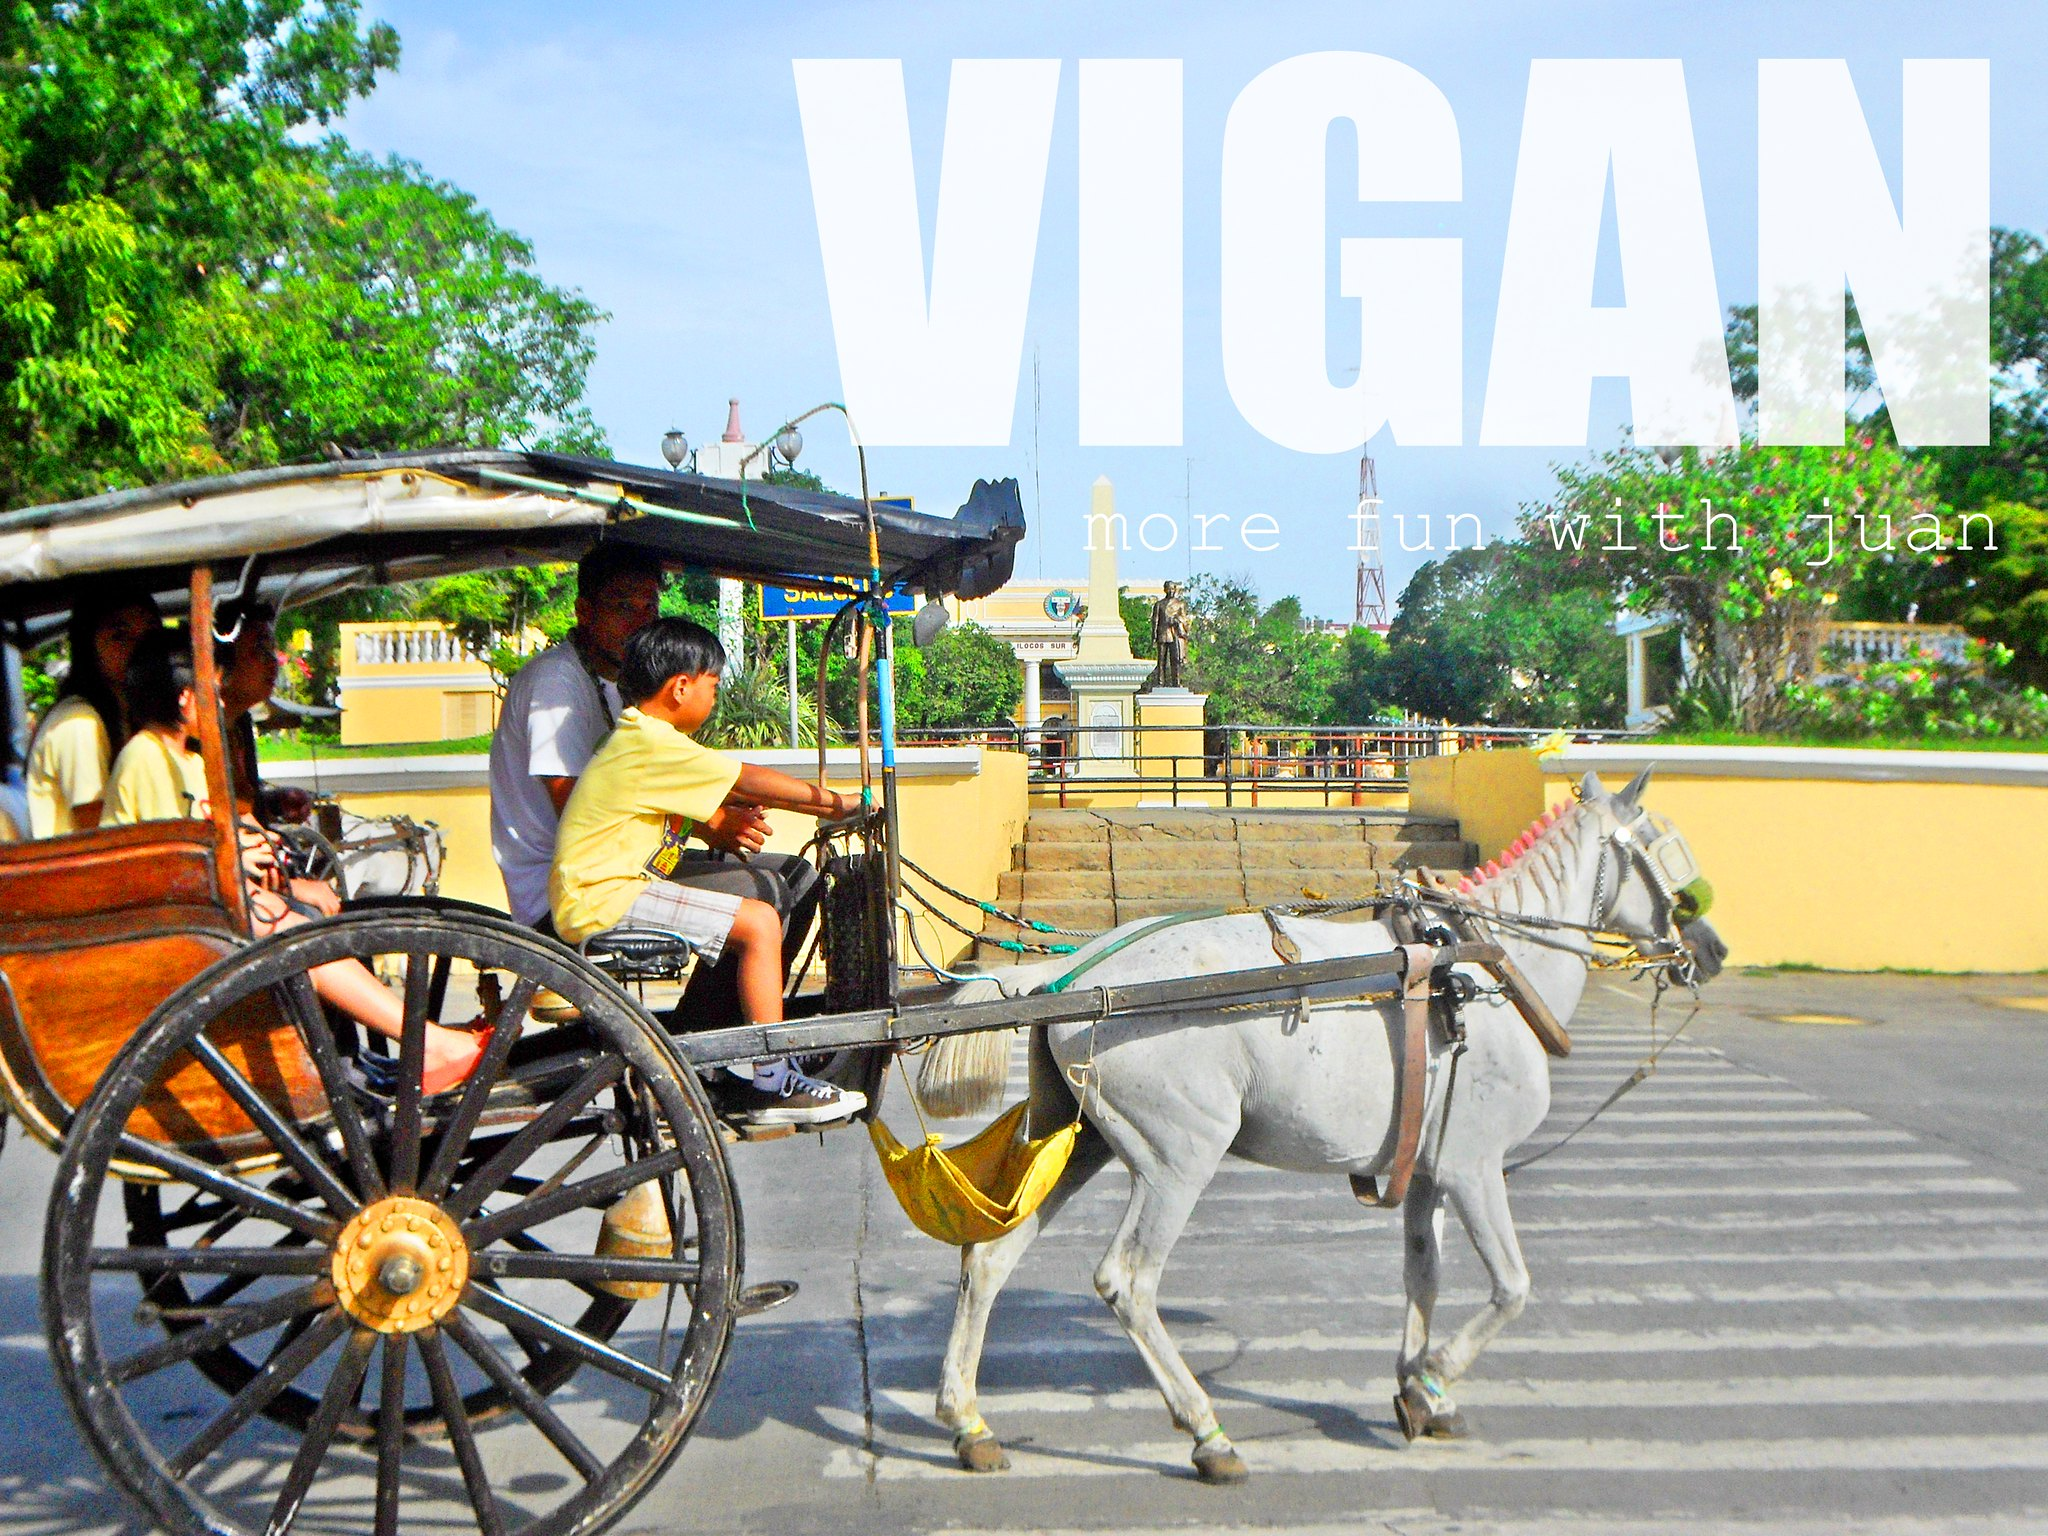 estimated budget vigan trip  vigan tour package 2019  manila to vigan bus  vigan tour package for couple  how to go to vigan from manila by plane  baguio to vigan  vigan itinerary 2018  vigan tour itinerary 2 days